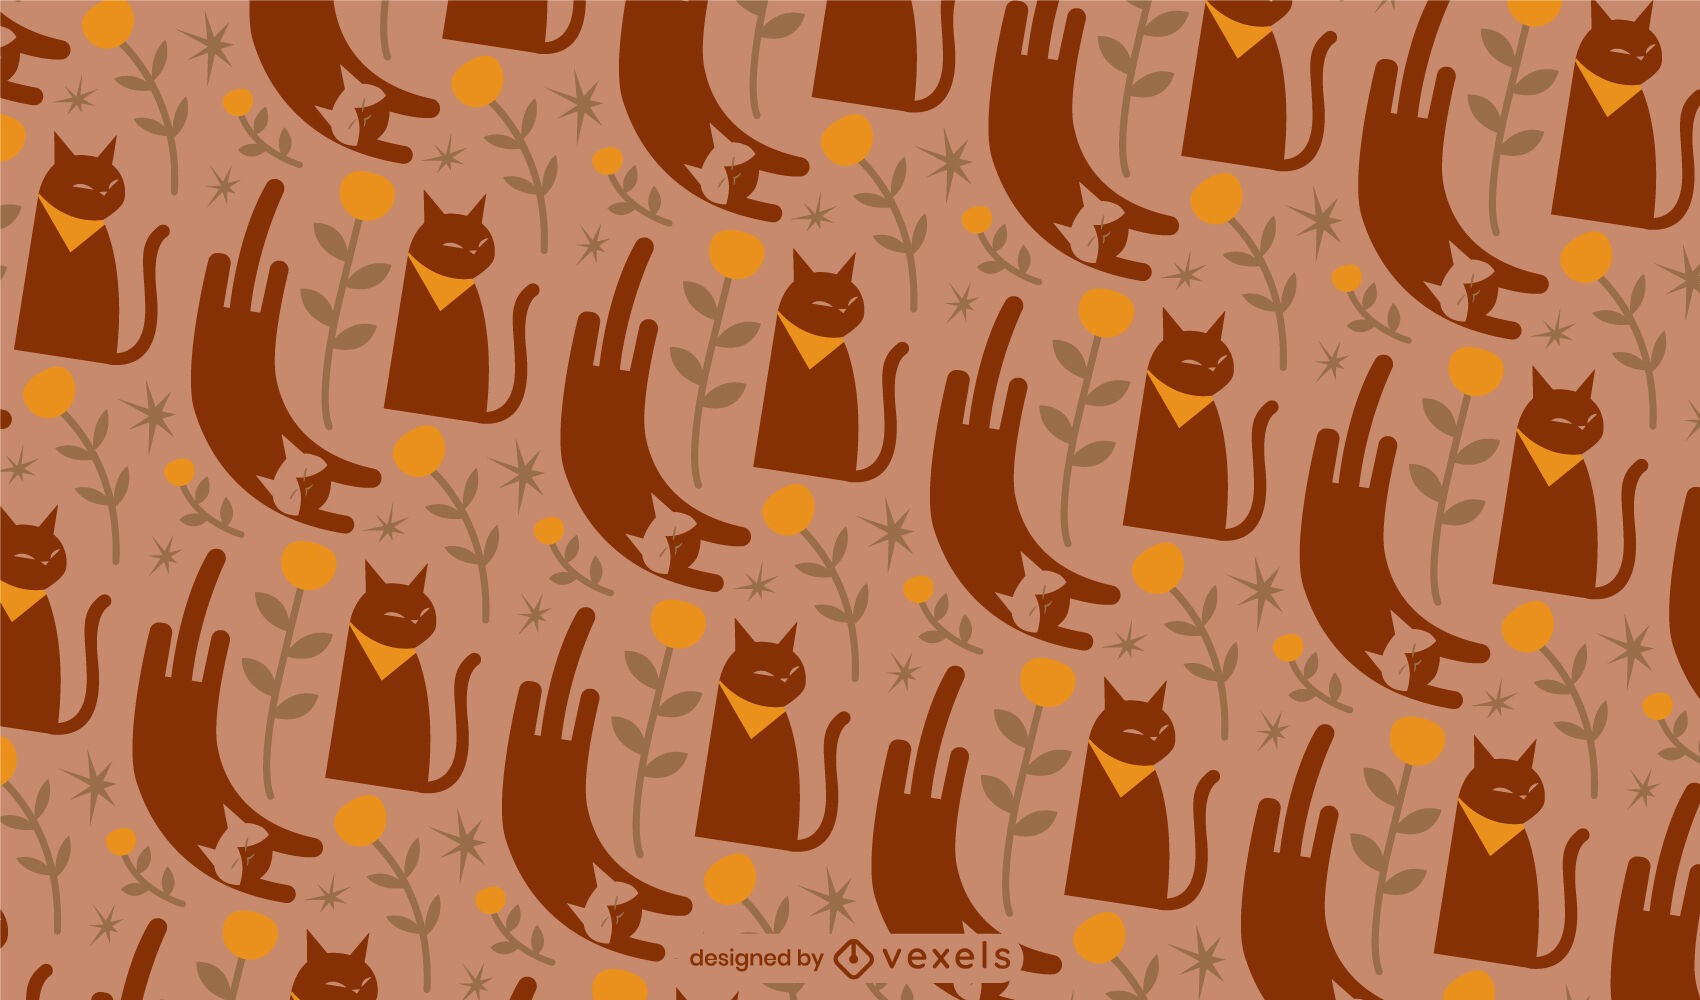 Cats brown and flat pattern